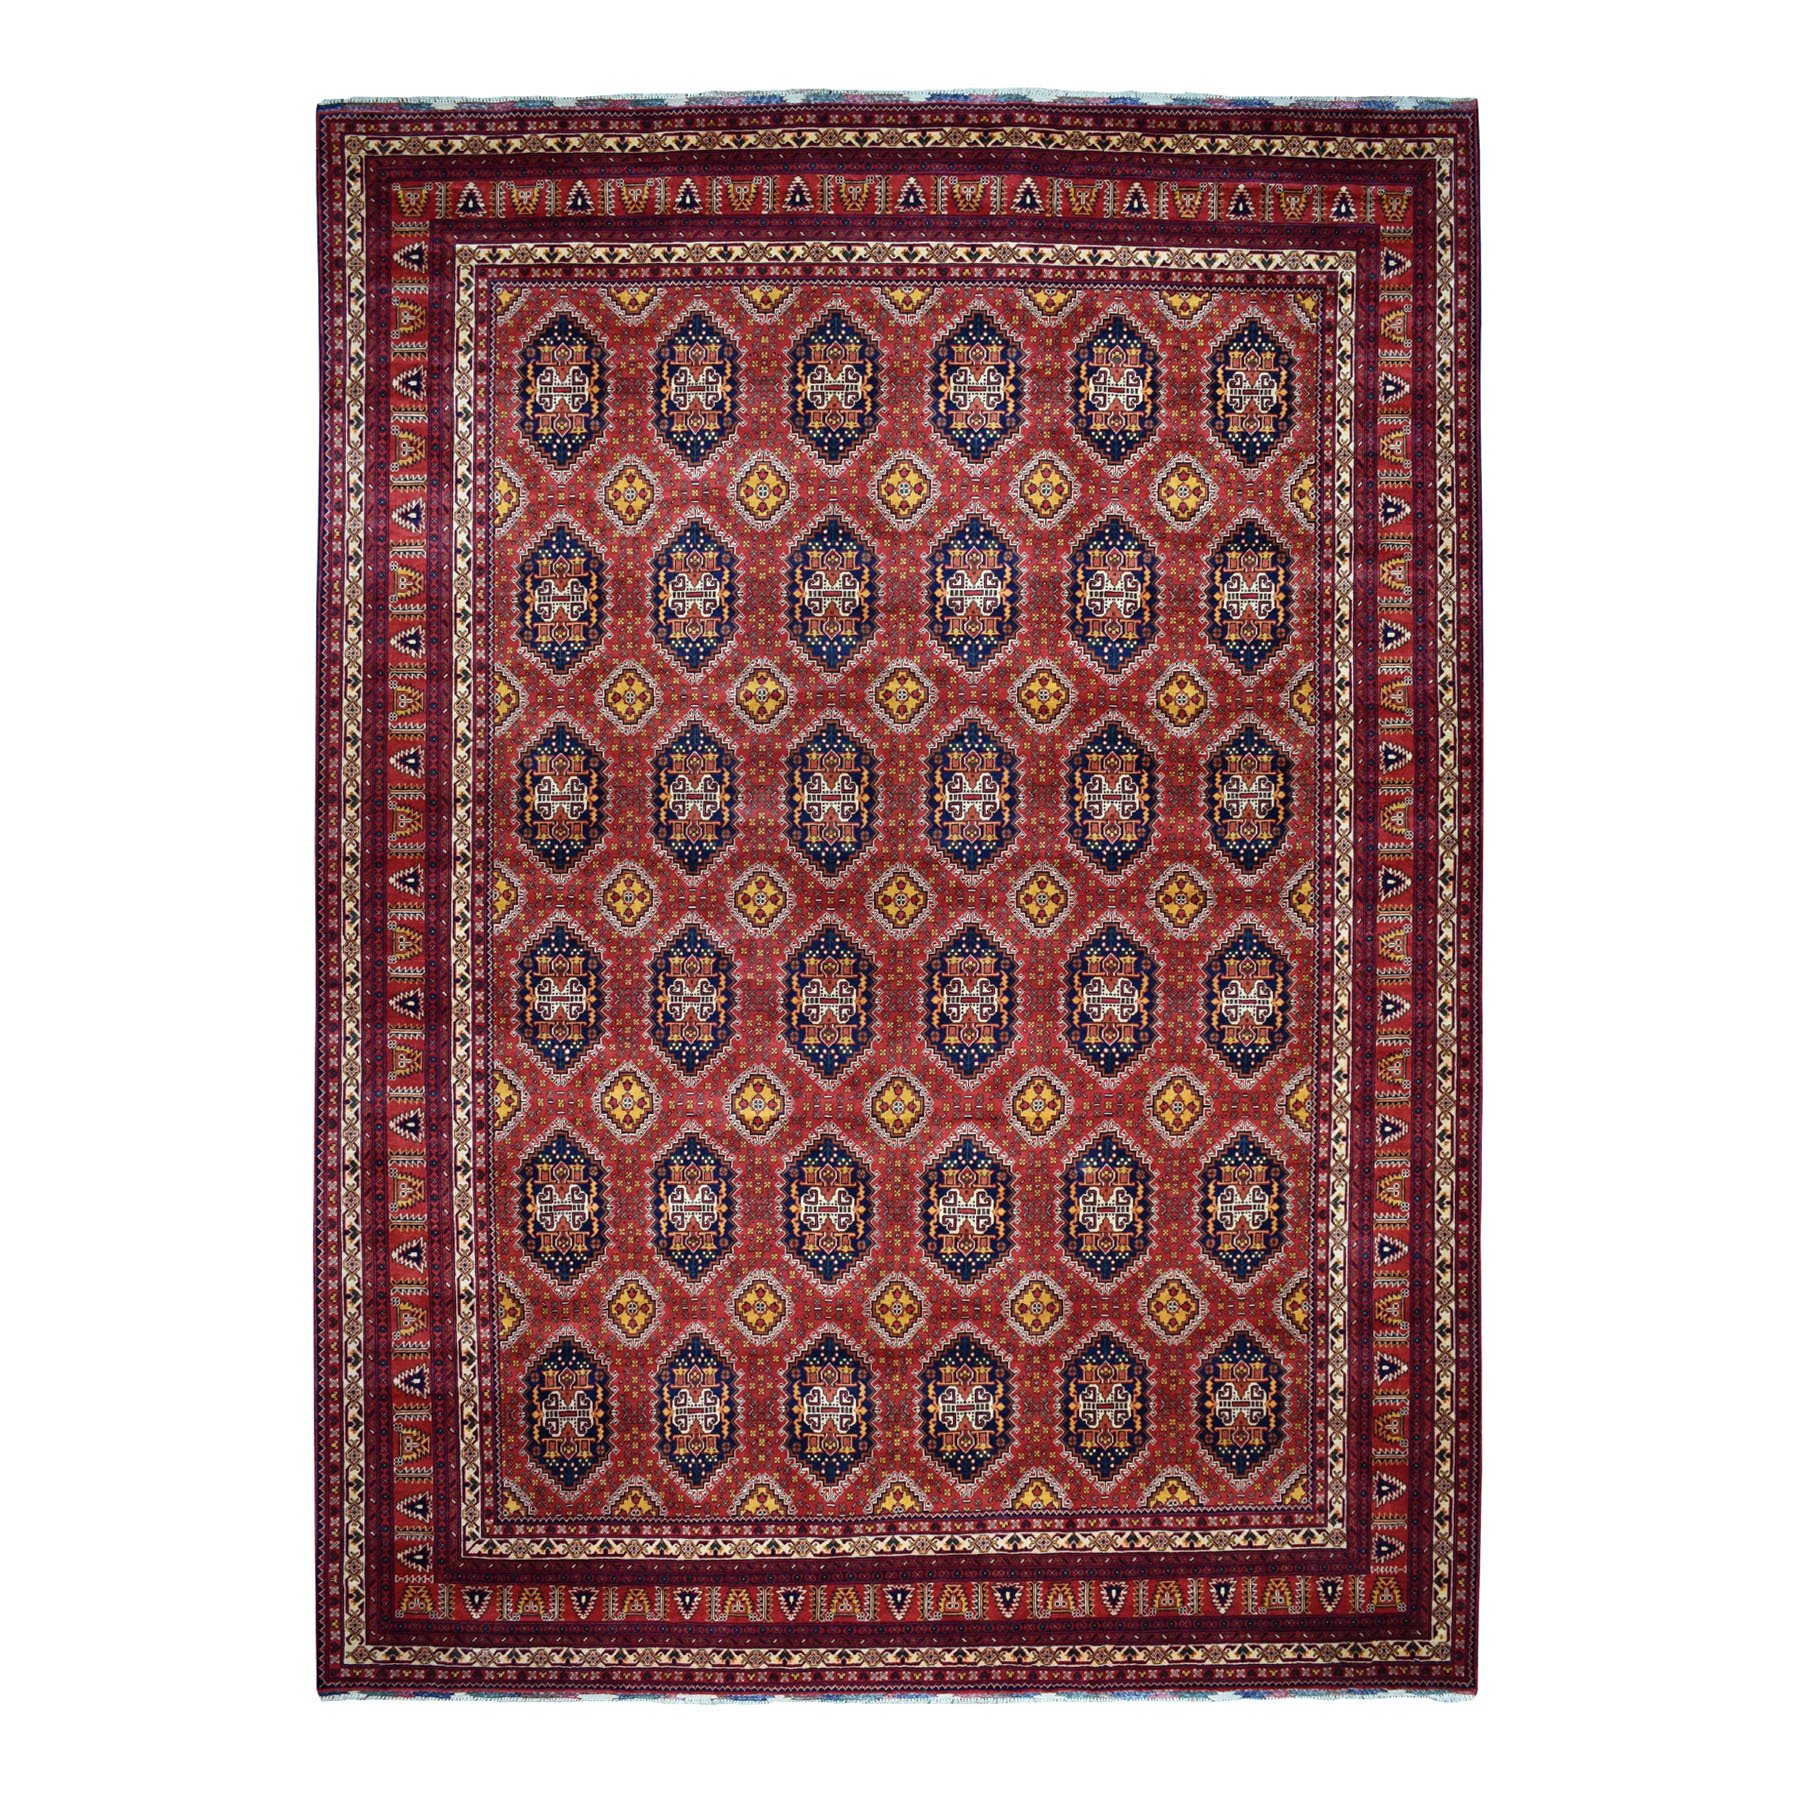 """10'1""""x12'5"""" Repetitive Design Pure Wool Afghan Khamyab Hand-Knotted Oriental Rug 51176"""